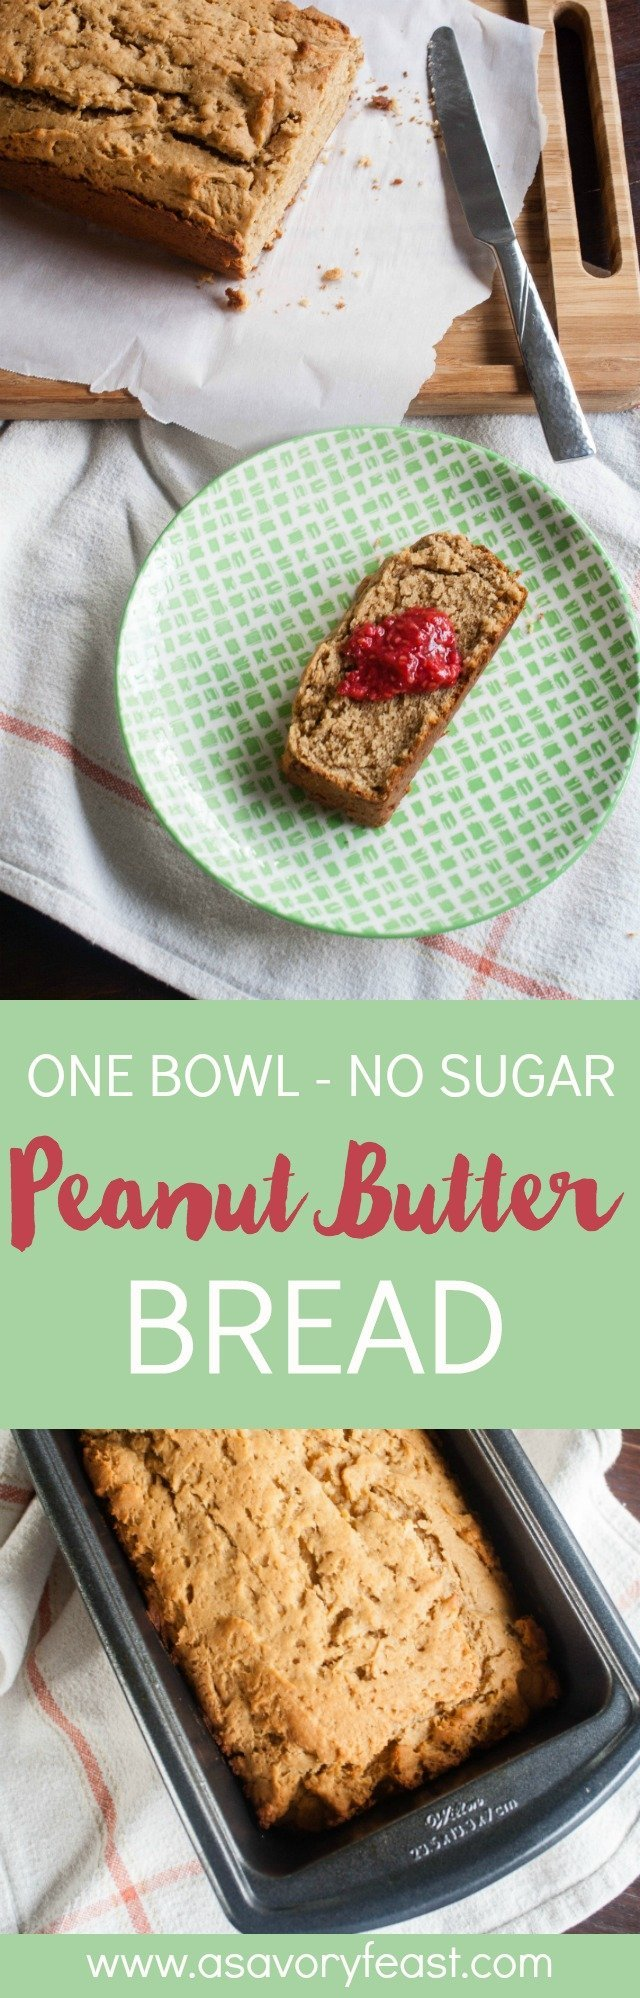 What's not to love about this simpleOne Bowl No Sugar Peanut Butter Bread? It's a healthier breakfast or snack option because it's sweetened with maple syrup instead of sugar. Made in one bowl for easy clean up, and packed with protein. It goes great with your favorite fruit jam or jelly!| Easy Peanut Butter Bread | Healthy | No Sugar Added #peanutbutter #breakfast #bread